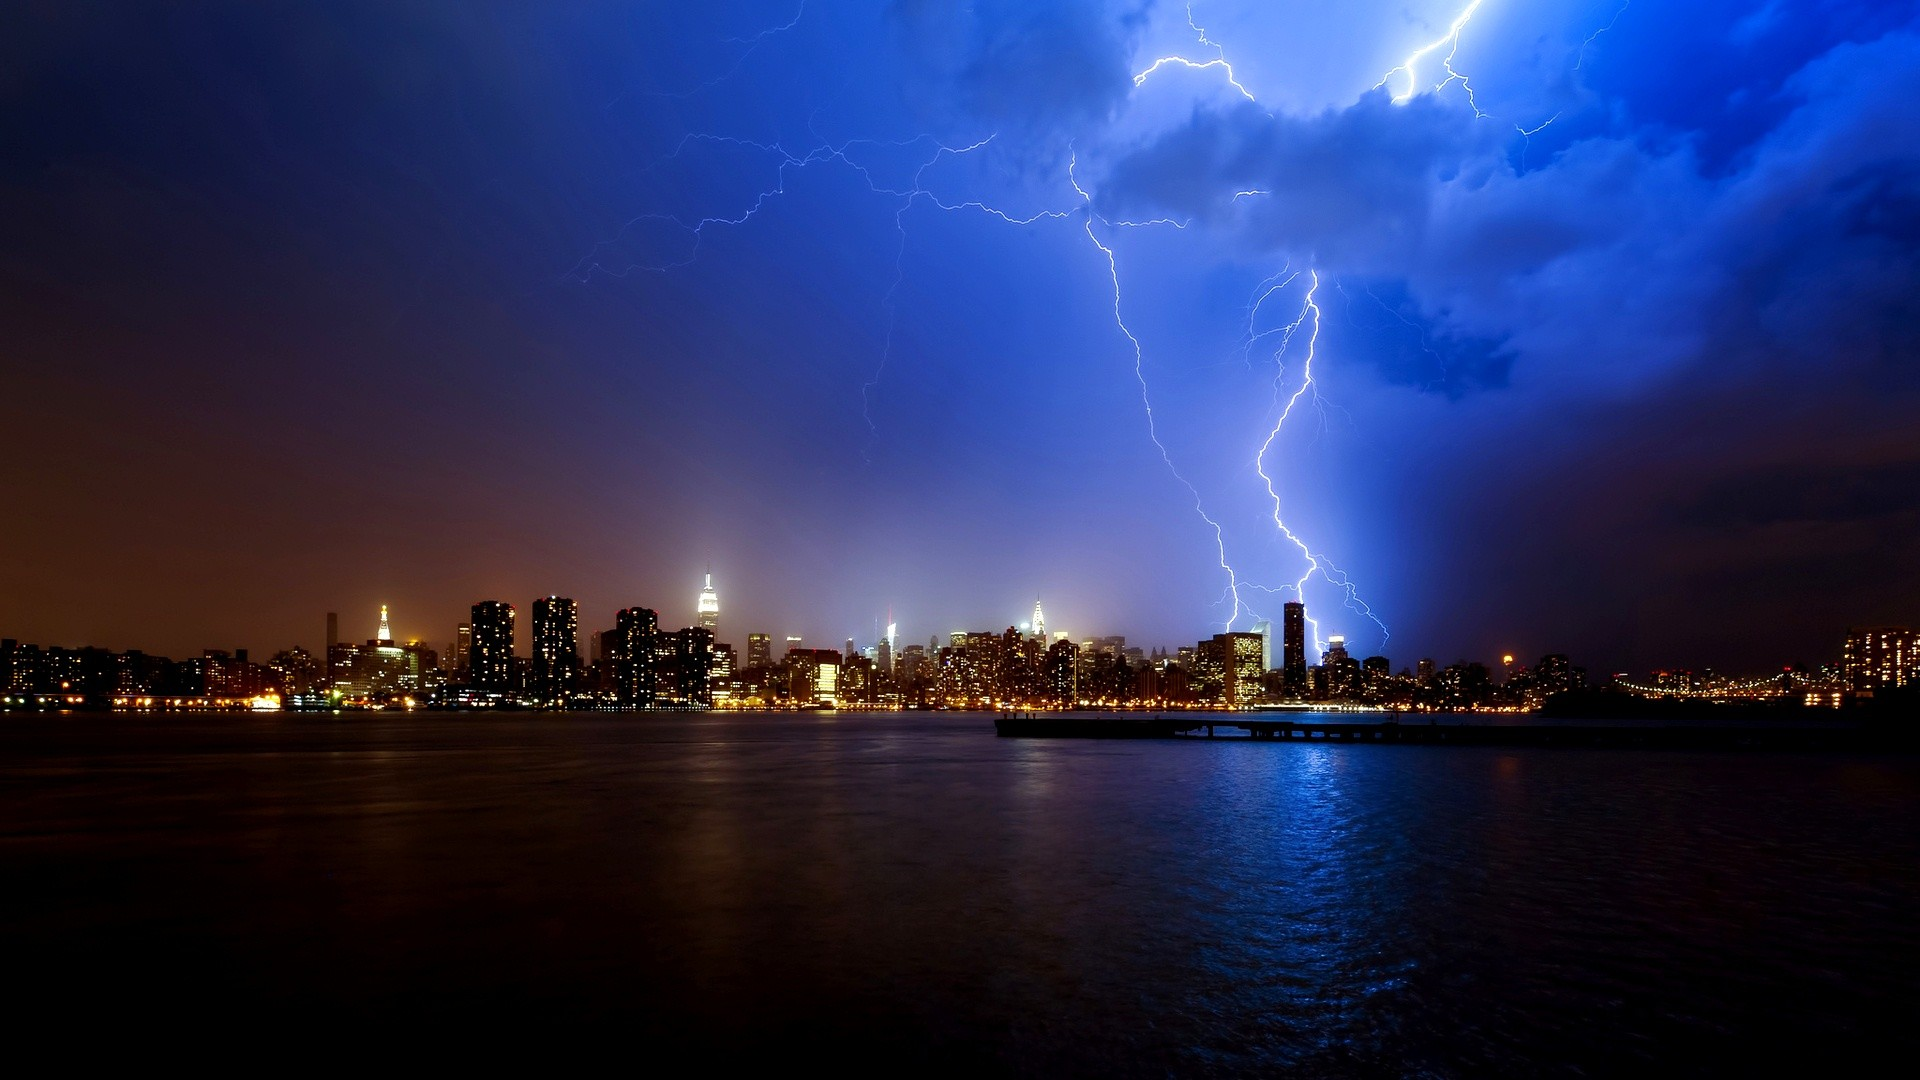 1920x1080 Thunder Fire HD Pictures, Thunder Storm Wallpapers - Wallpapers .